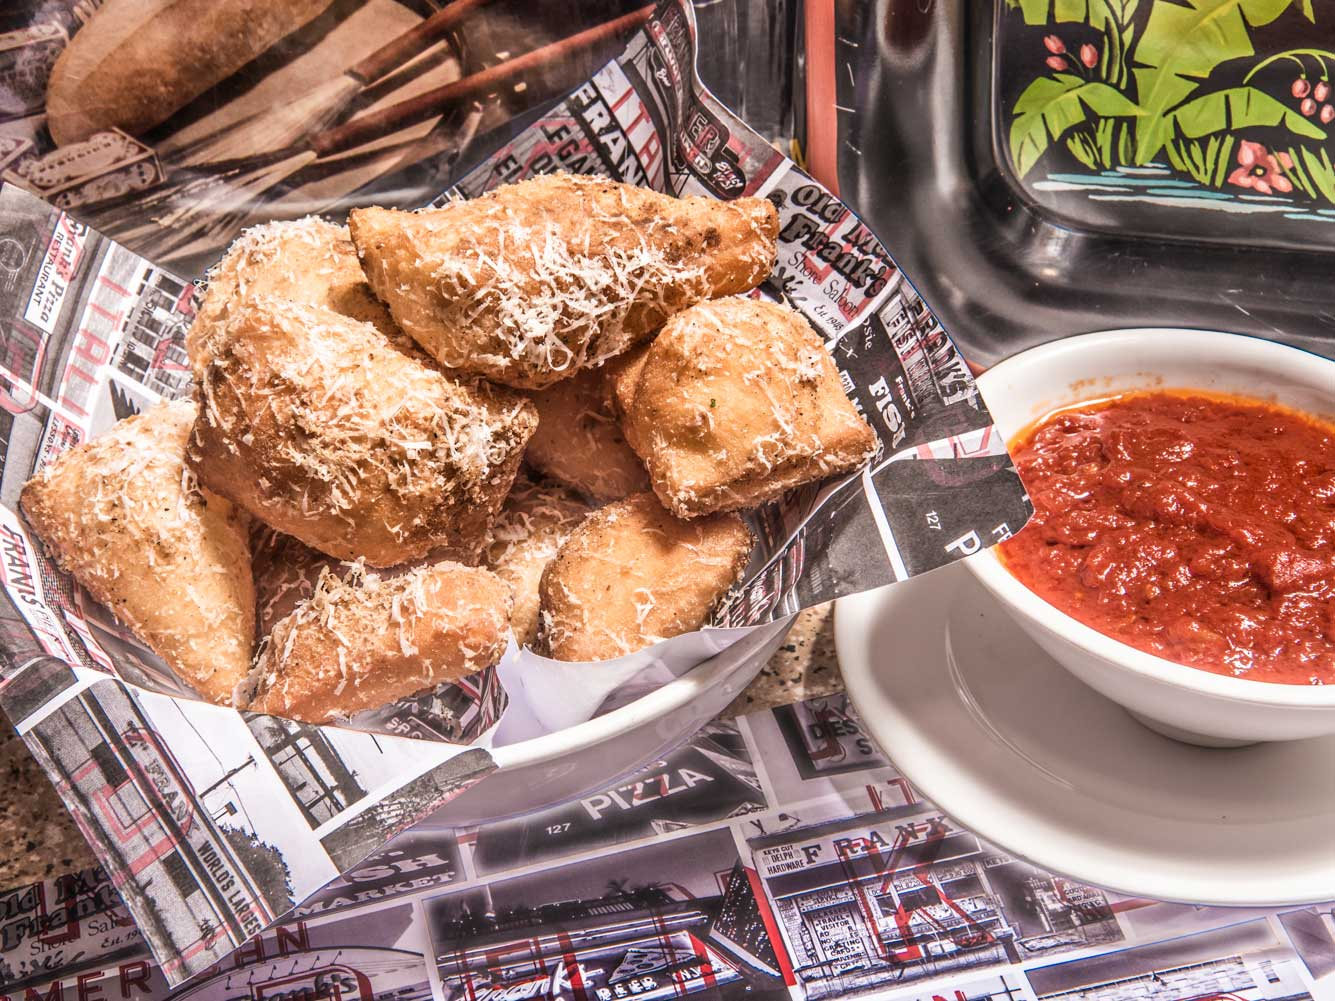 Frank's gnocco fritto with sauce.